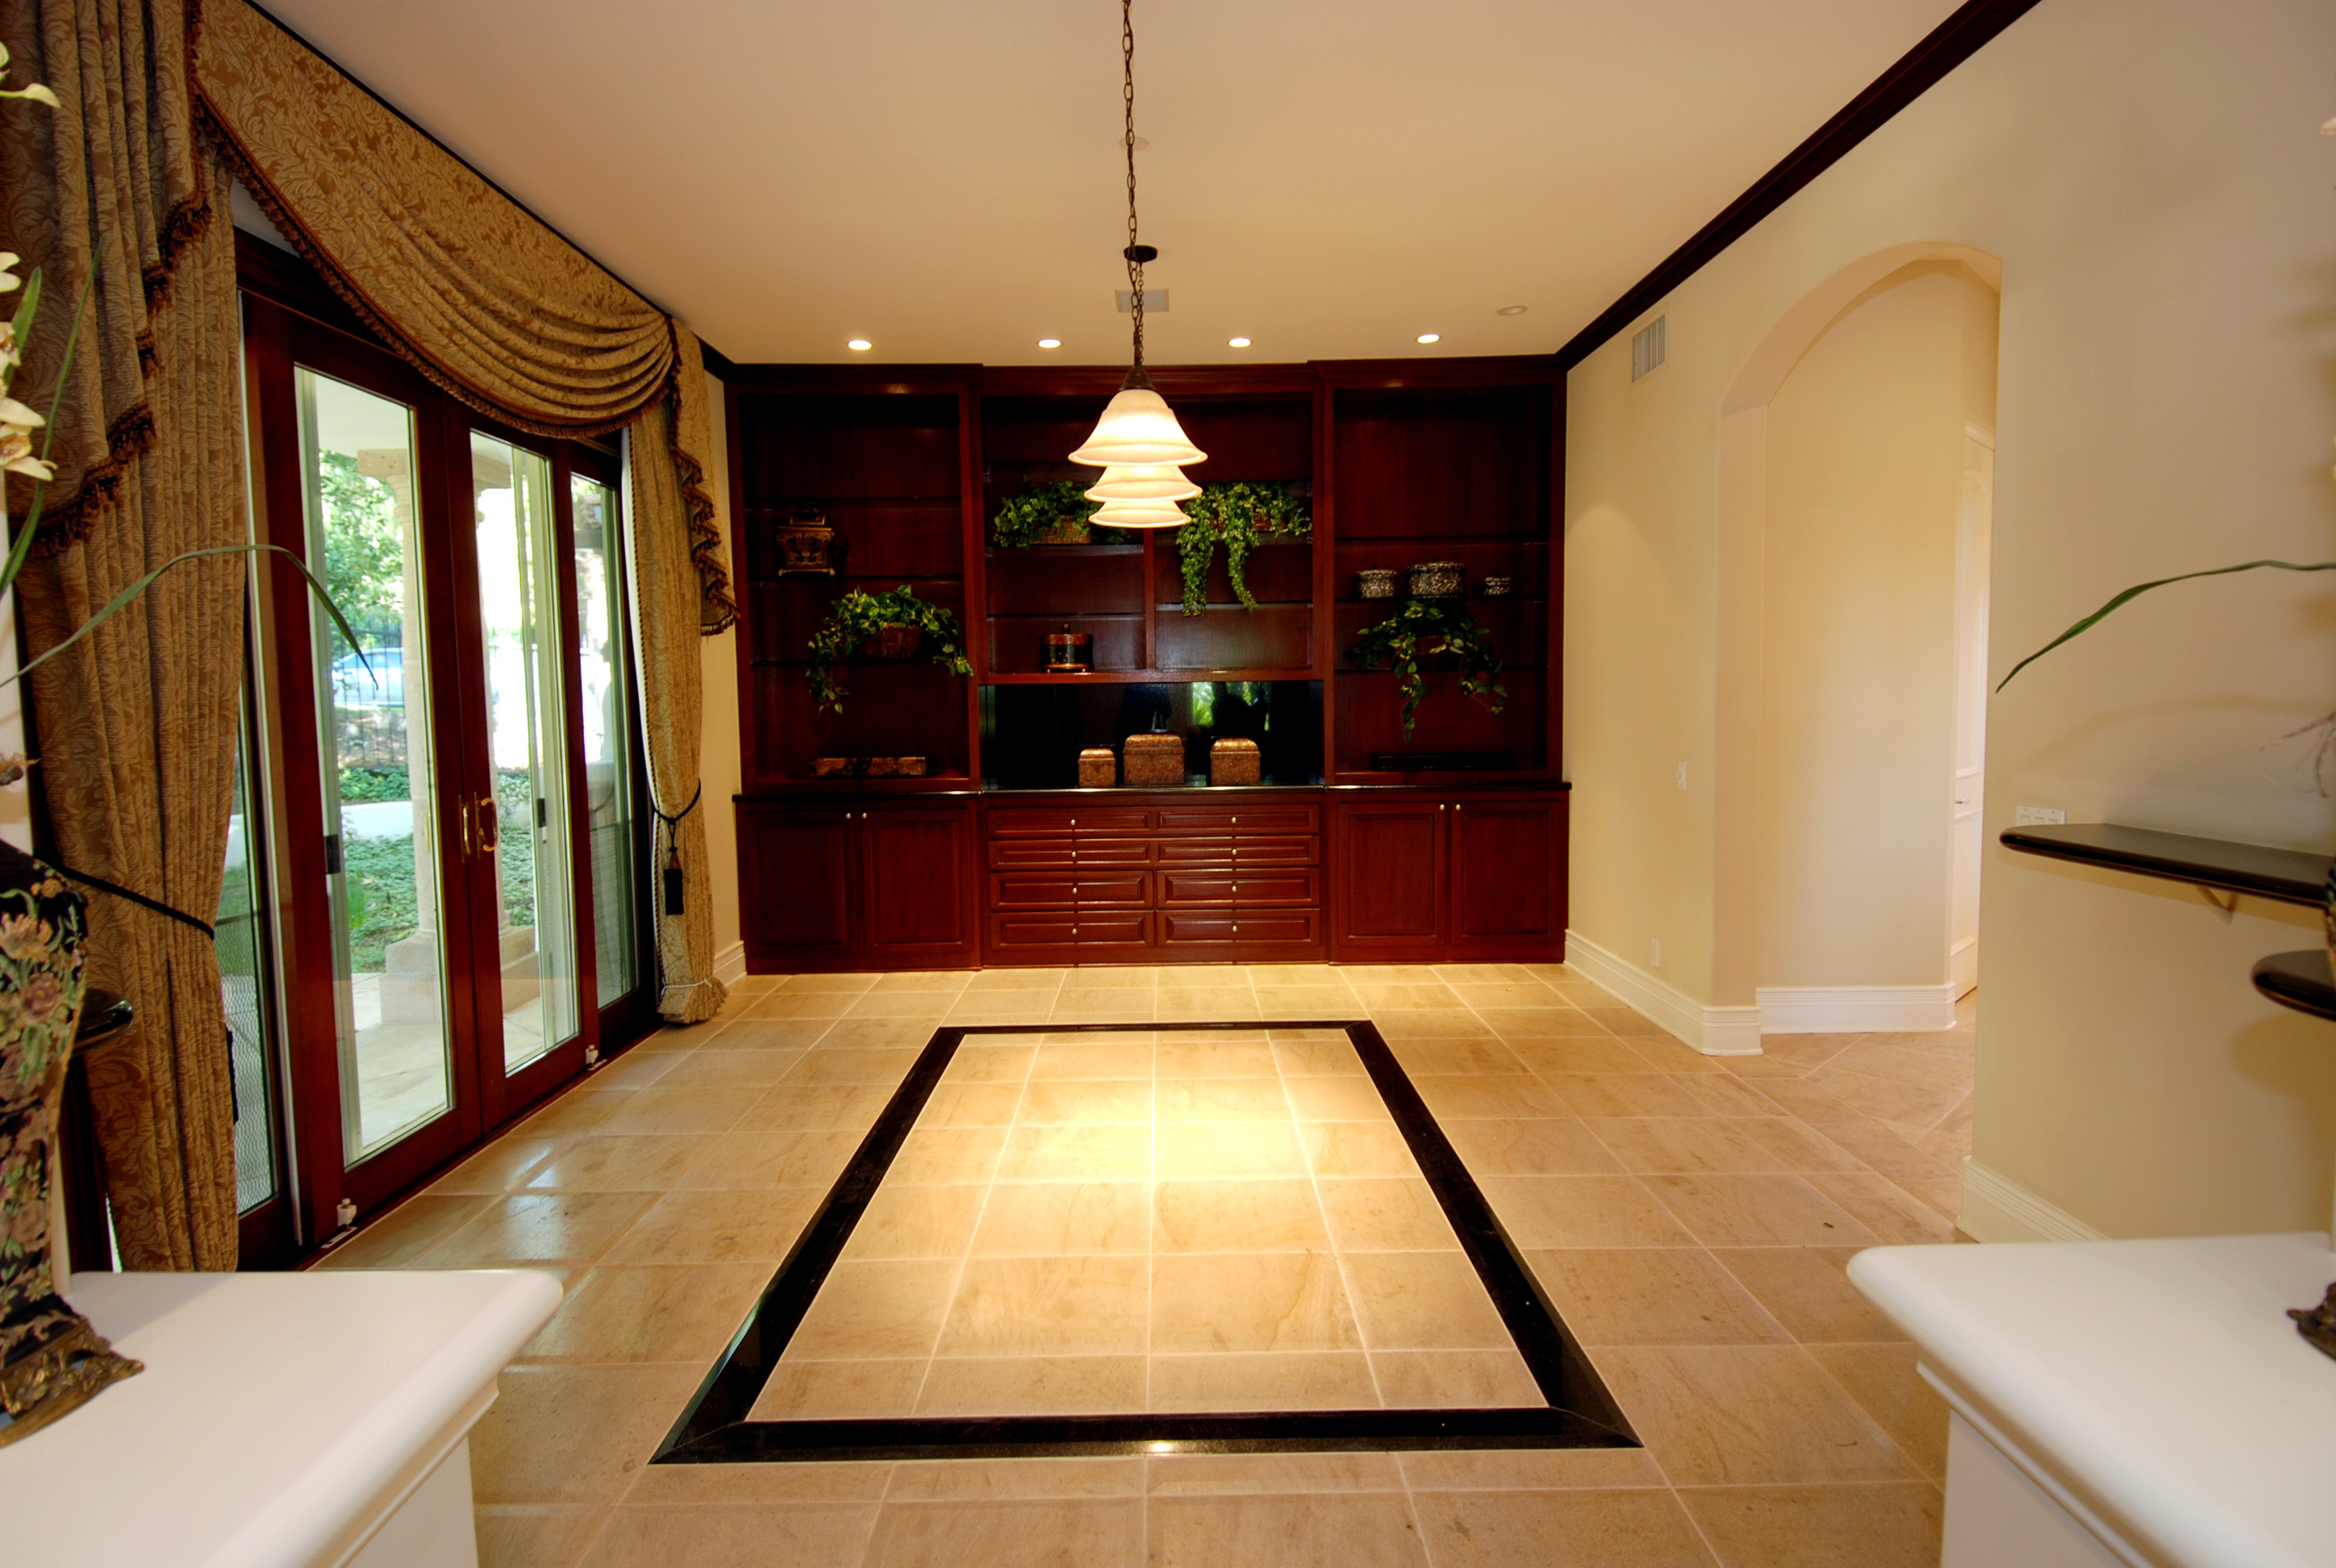 Mediterranean manor luxury home finish carpentry project for Luxury floor